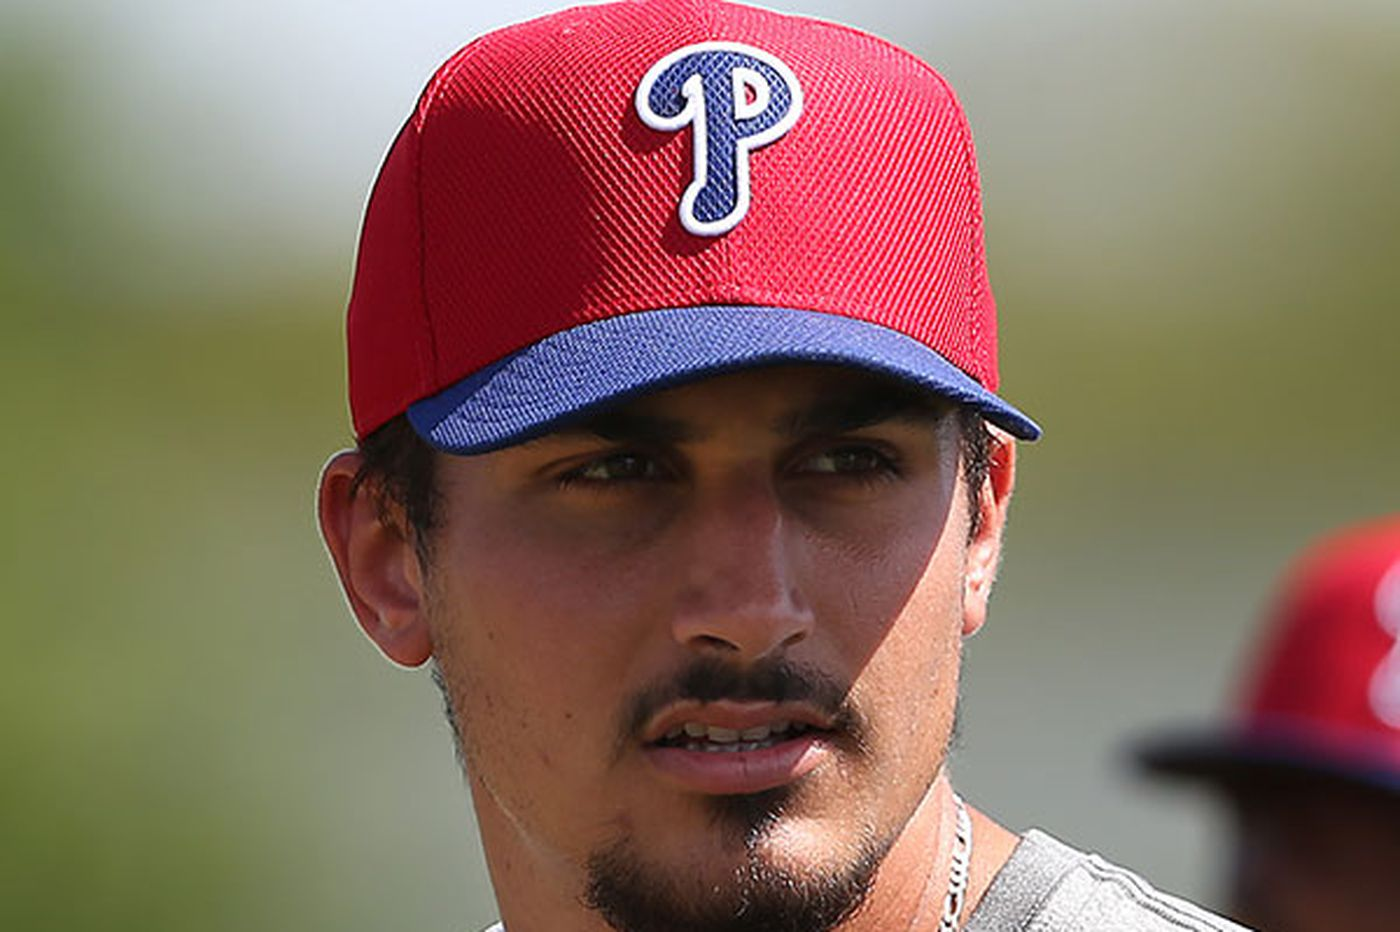 Hats off to Eflin's inspiring message